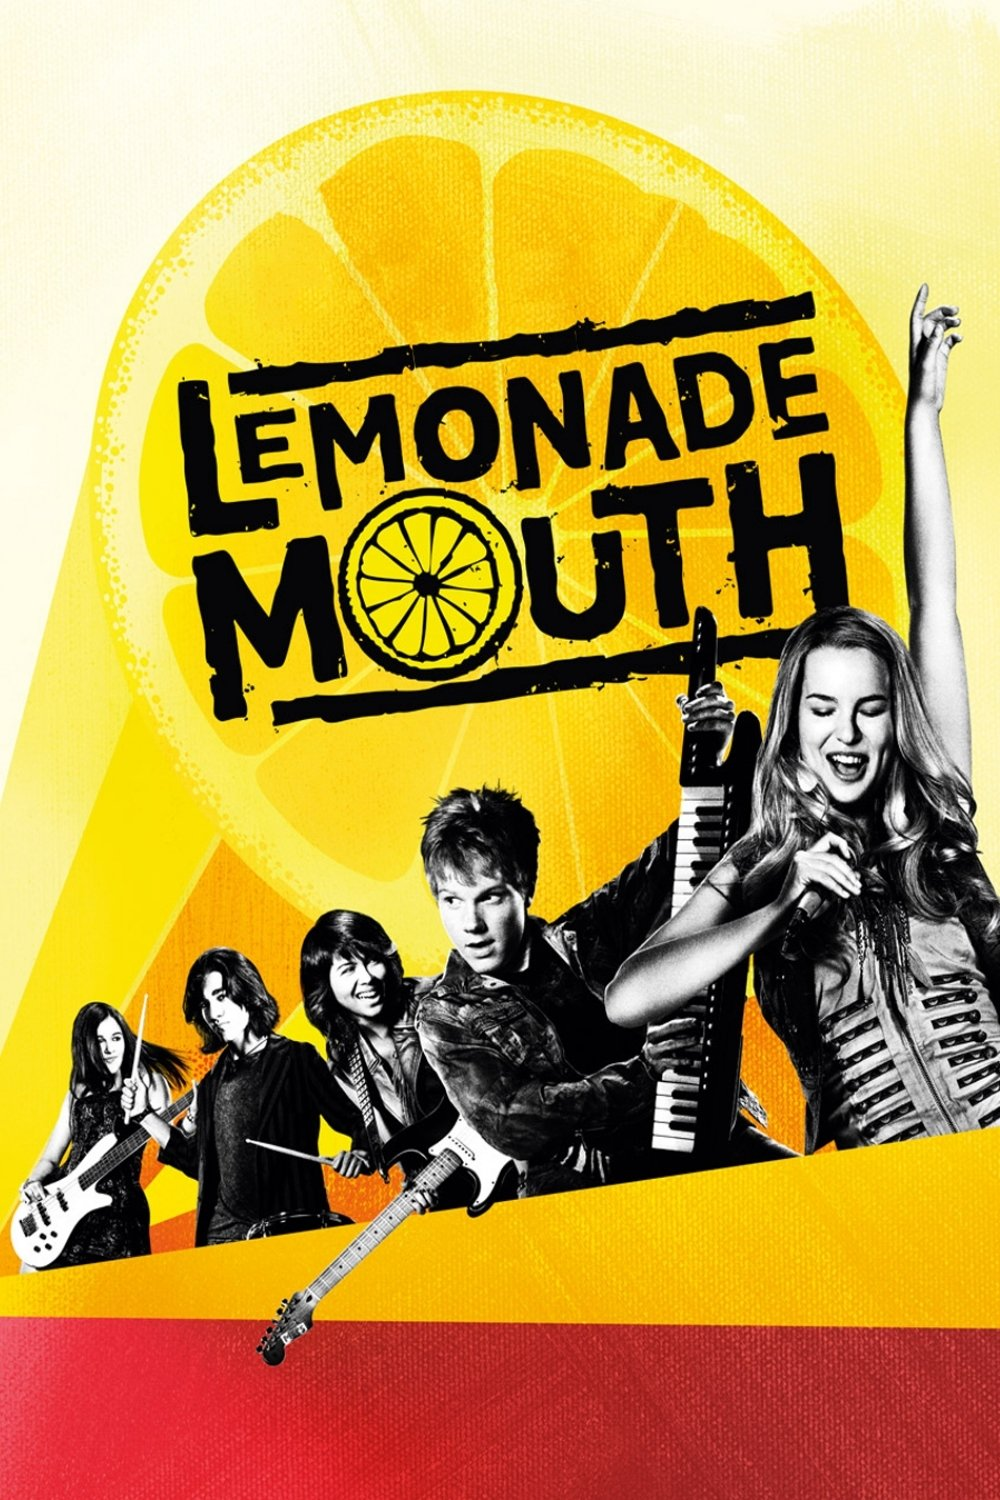 Lemonade Mouth, 2011